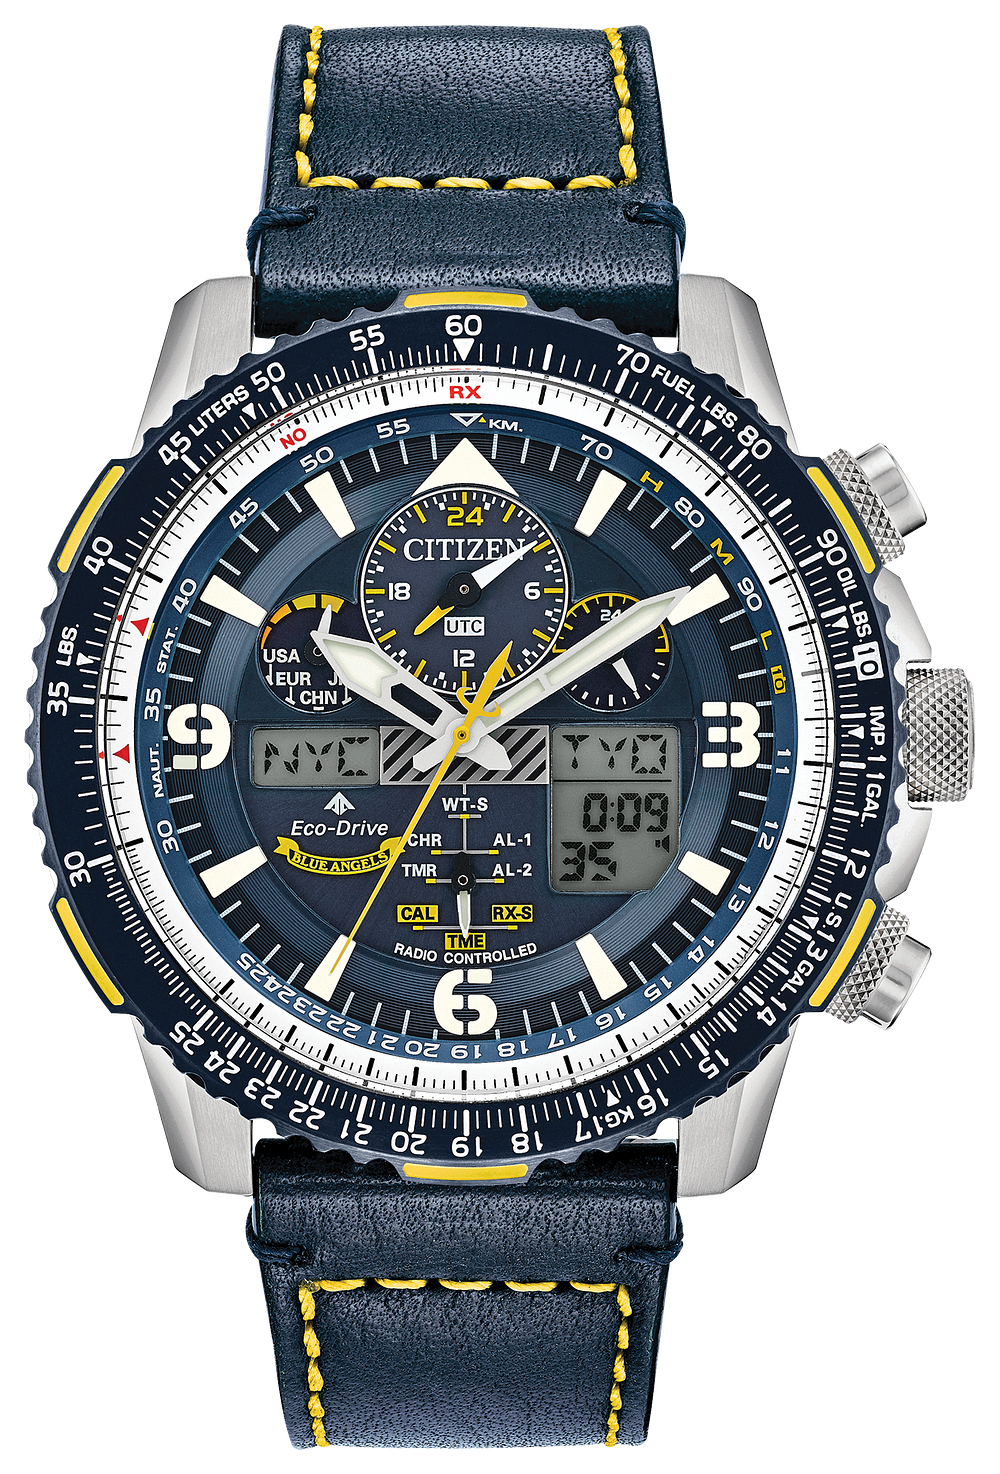 95de2e311 Promaster Skyhawk A-T - Men's Eco-Drive JY8078-01L Watch | Citizen